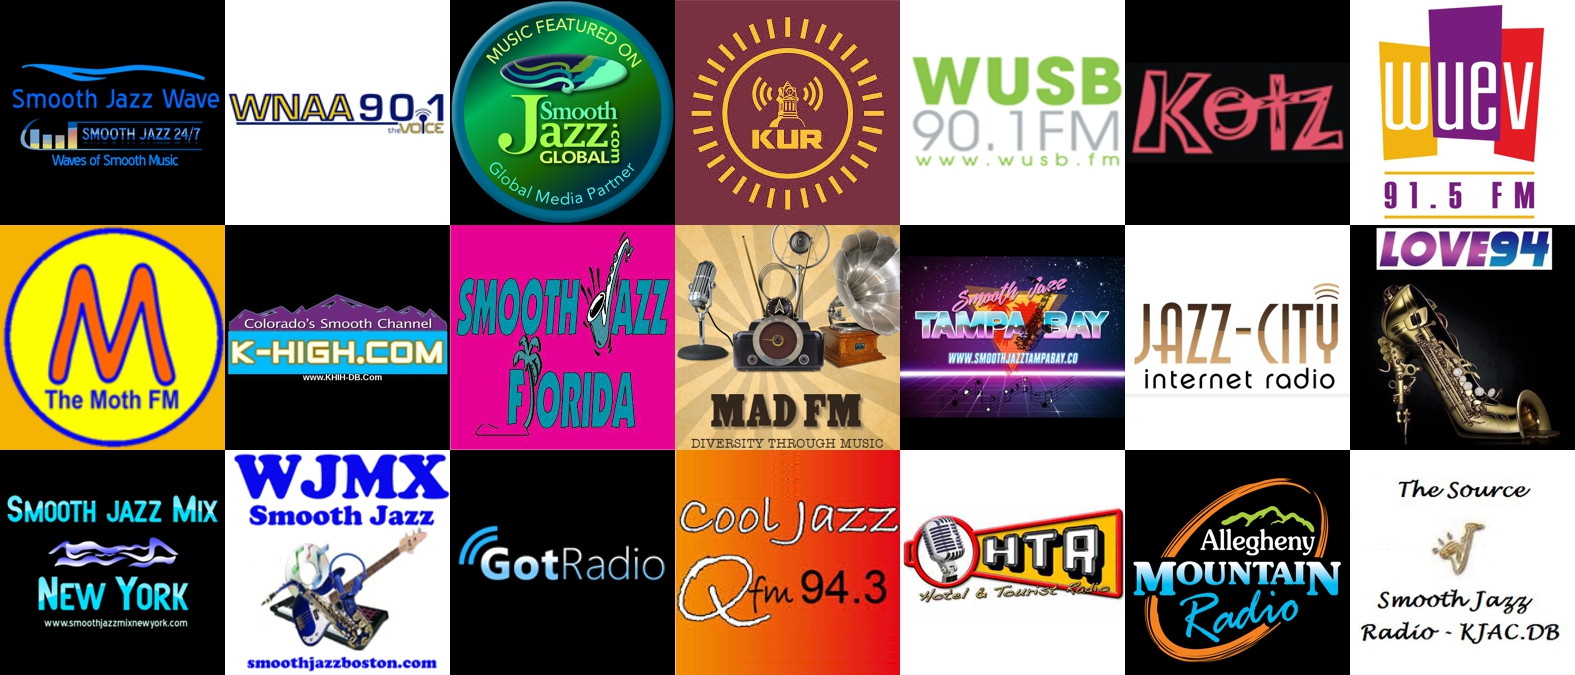 510JAZZ was heard on 21 radio stations during the week of August 27.